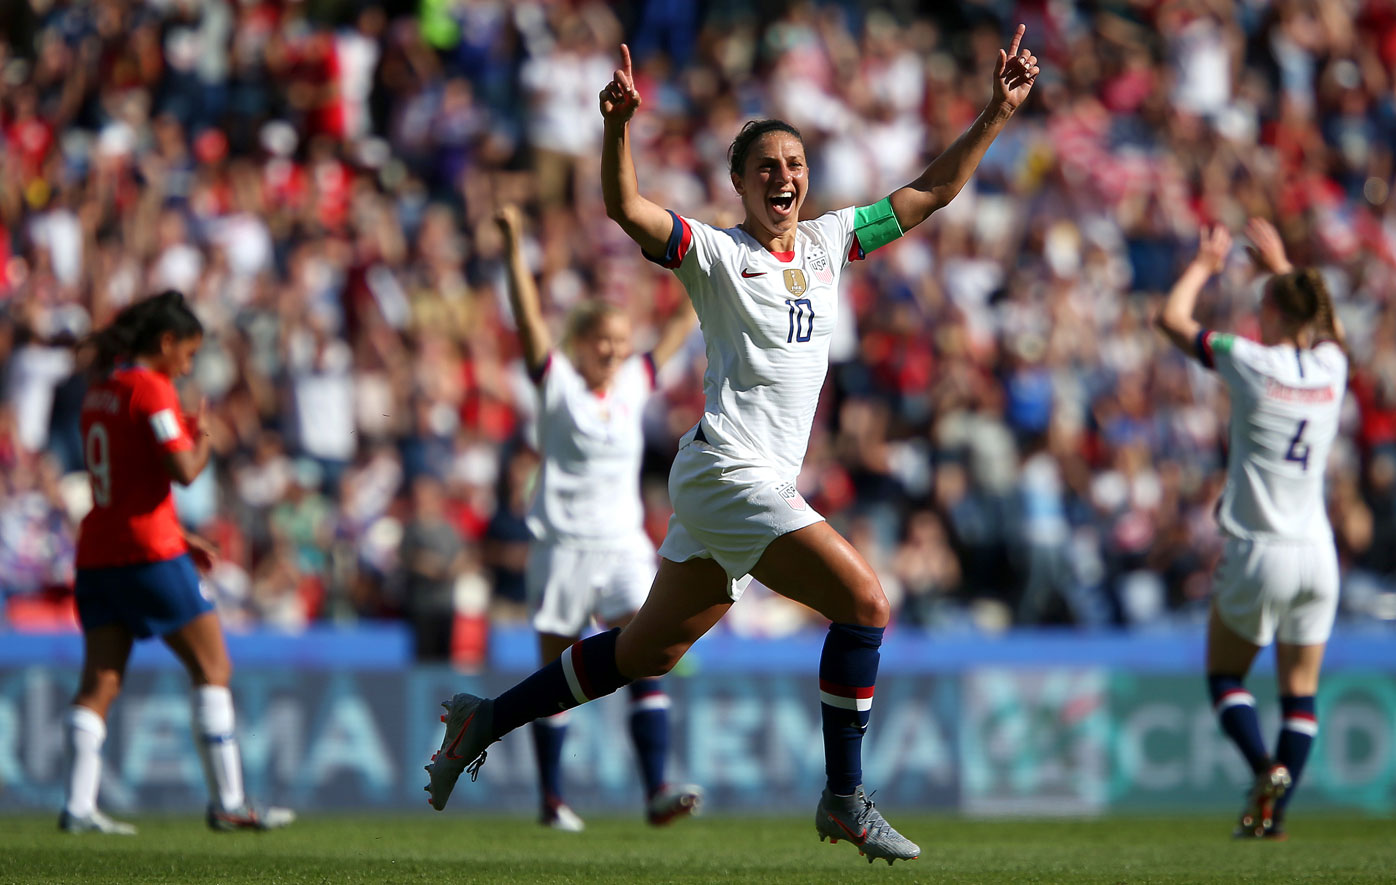 Women's World Cup 2019 | Getty Images best photos, Cassie Trotter